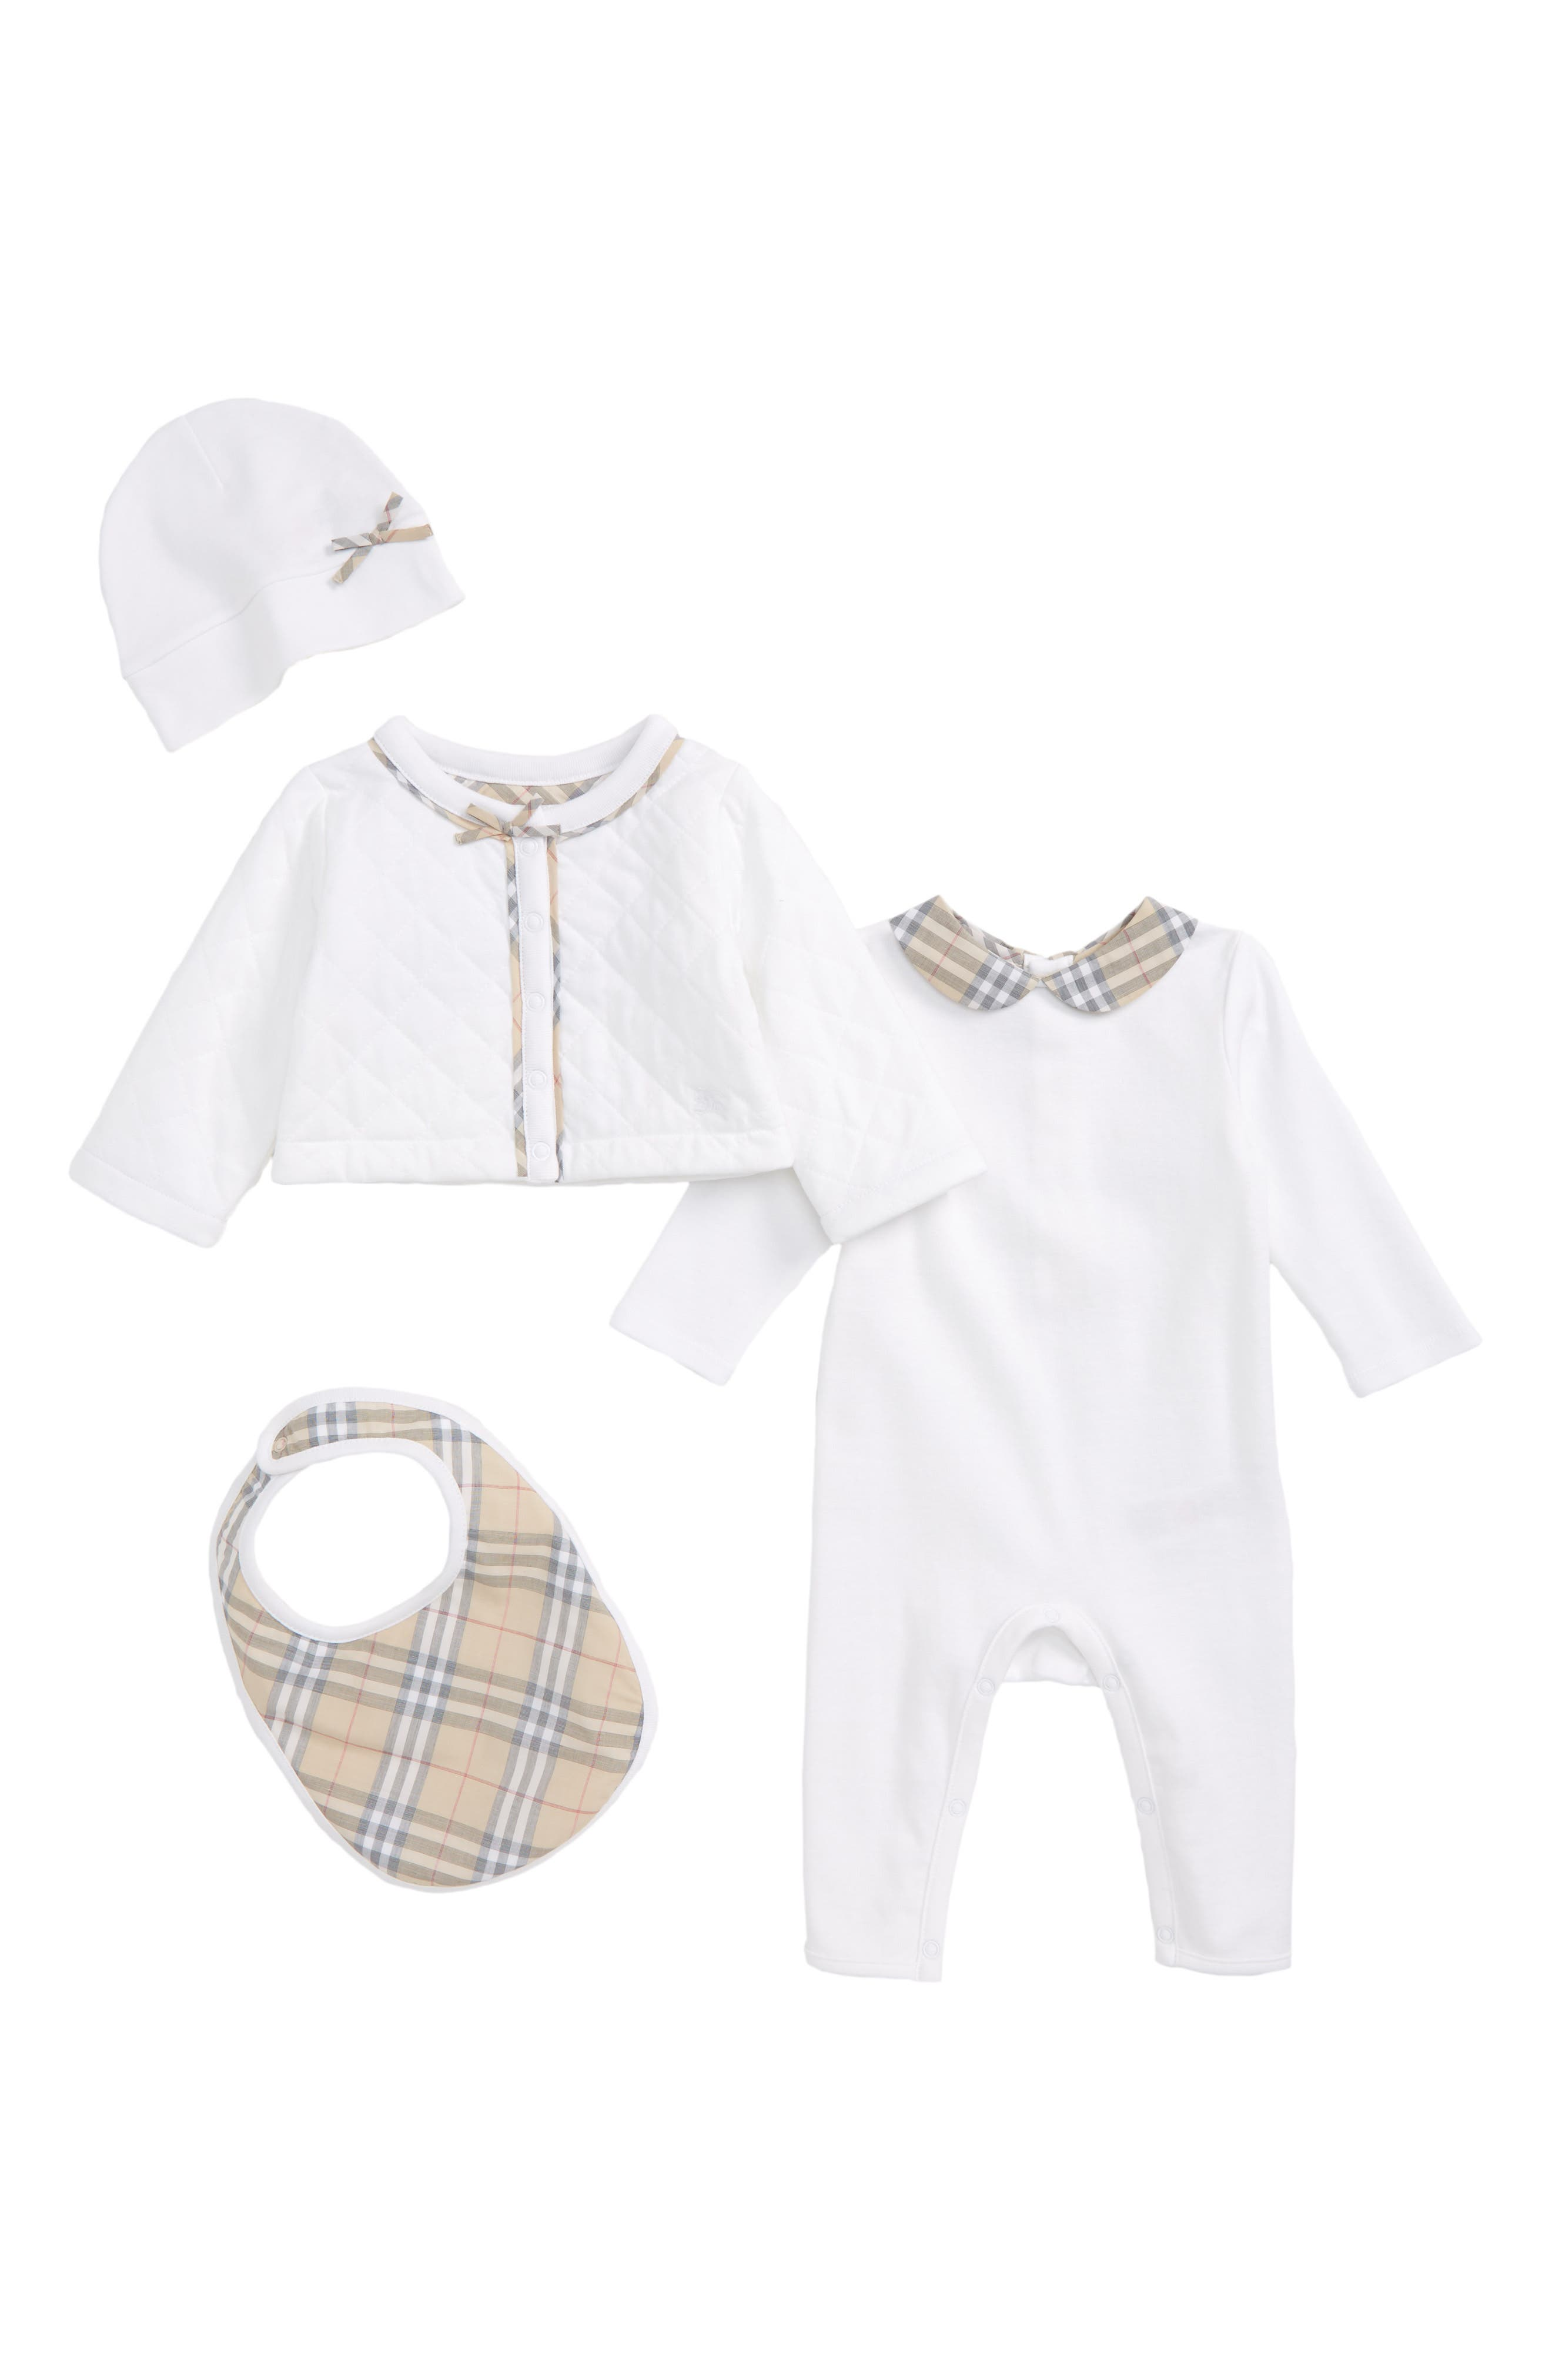 Zaria Romper, Jacket, Bib & Hat Set,                             Main thumbnail 1, color,